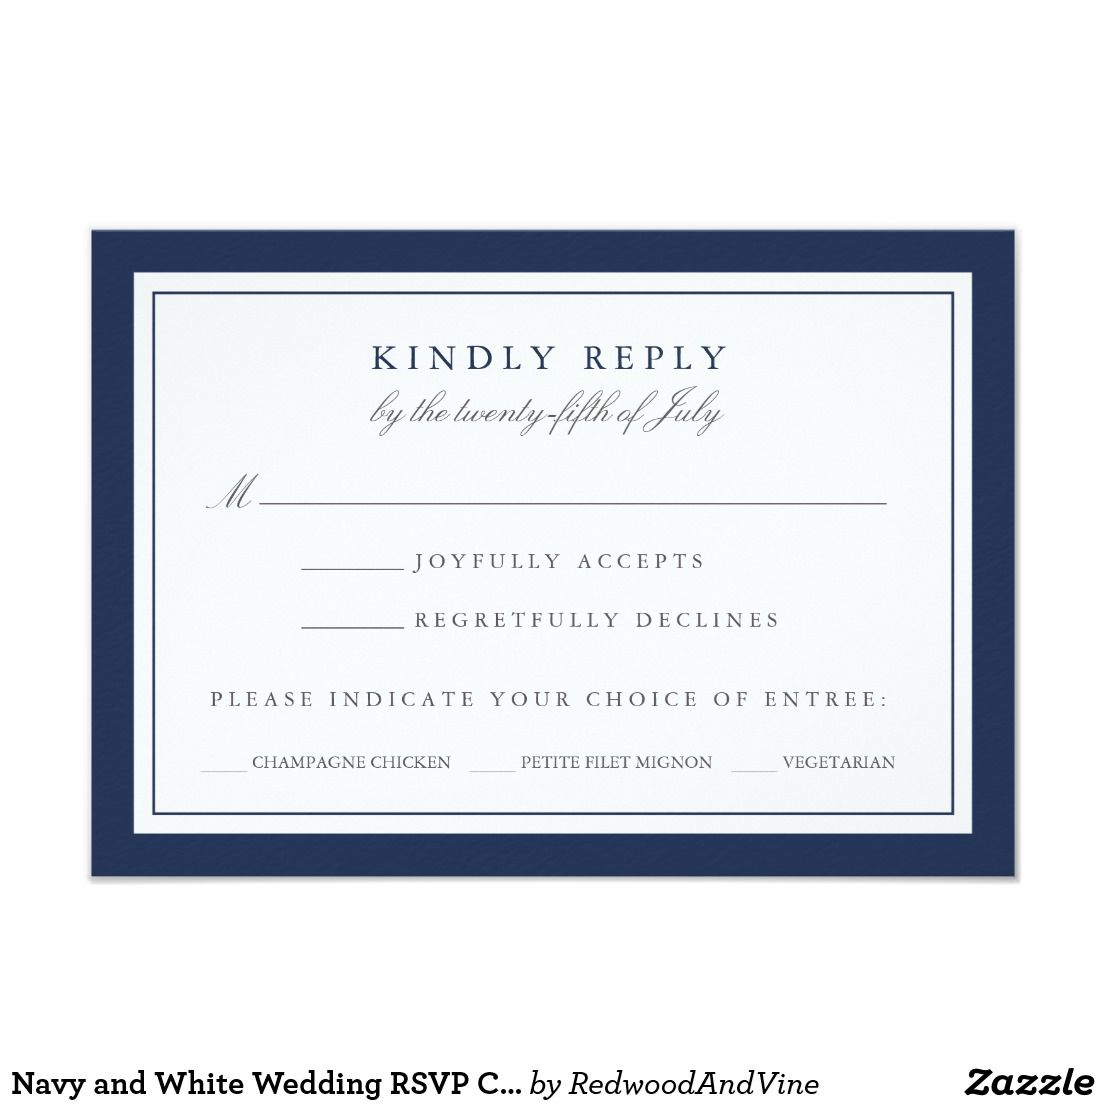 Navy And White Wedding Rsvp Card W Meal Choice